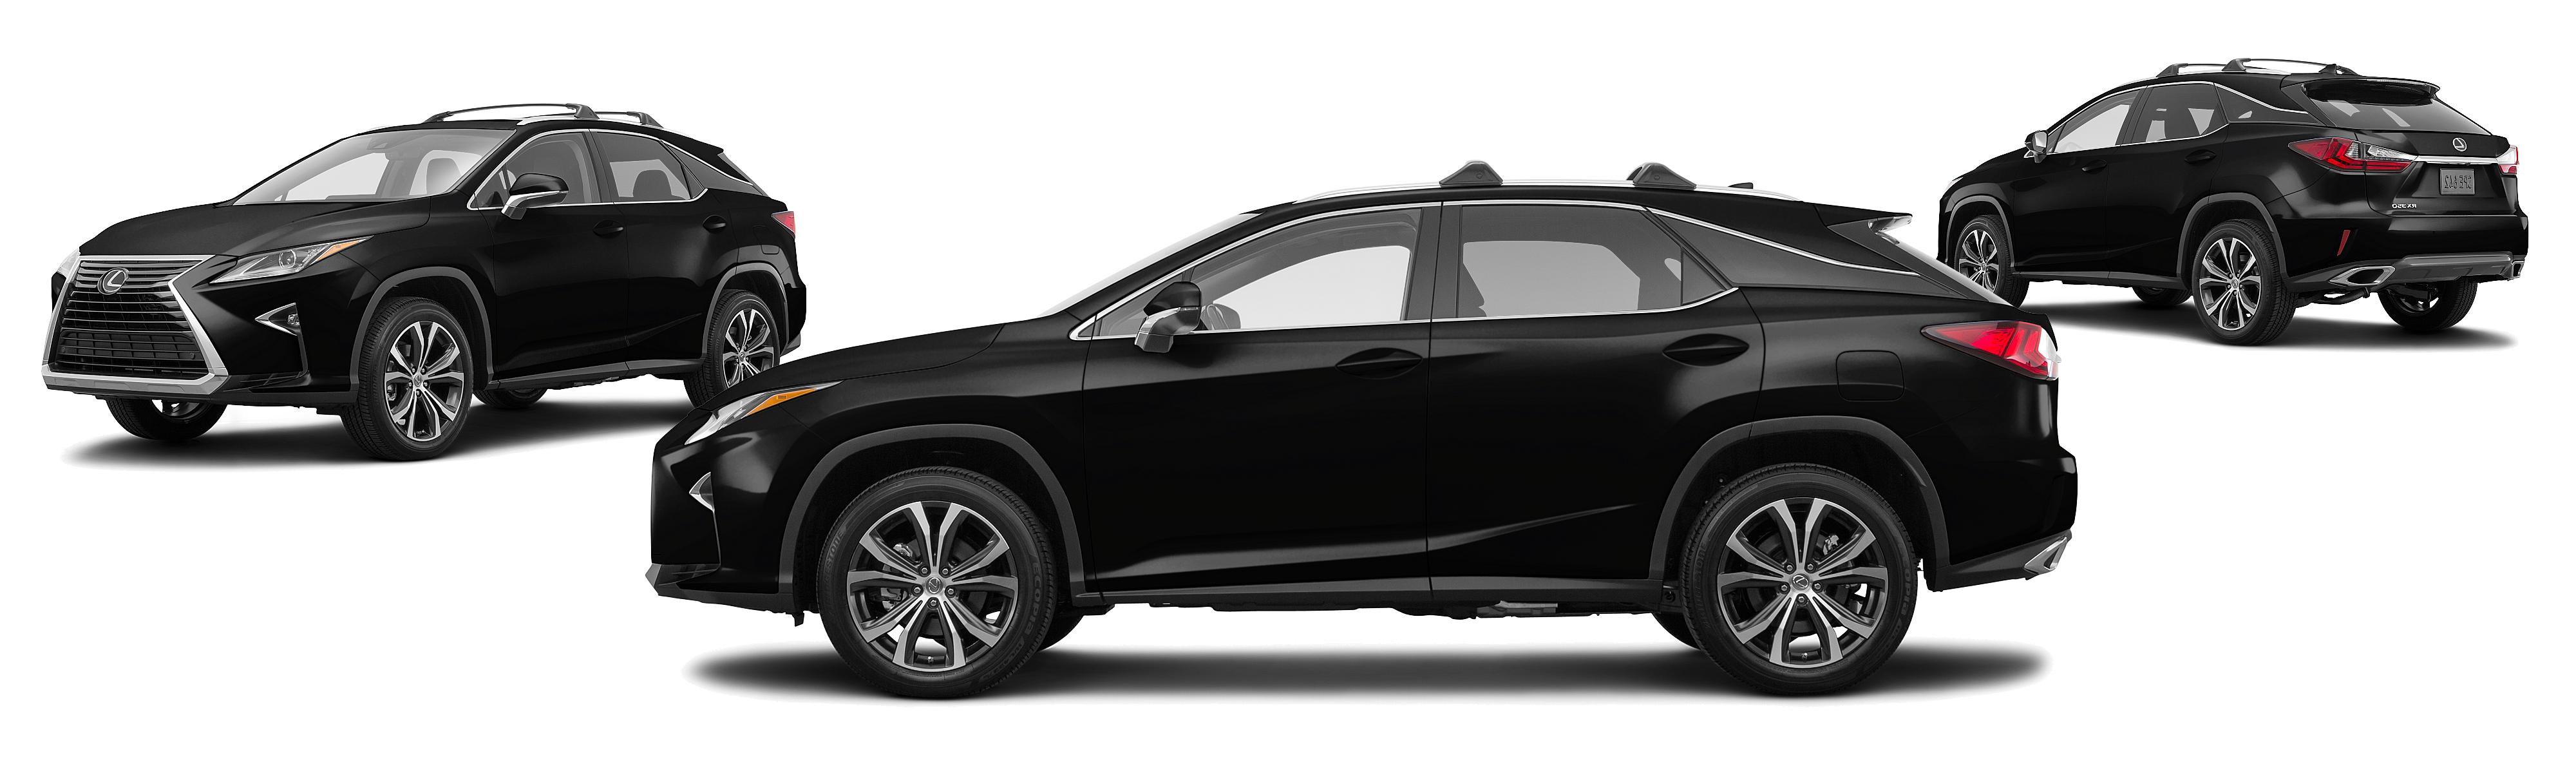 usa through new side two a view my redefines gastronomic rx lexus luxury piston full suv treat models